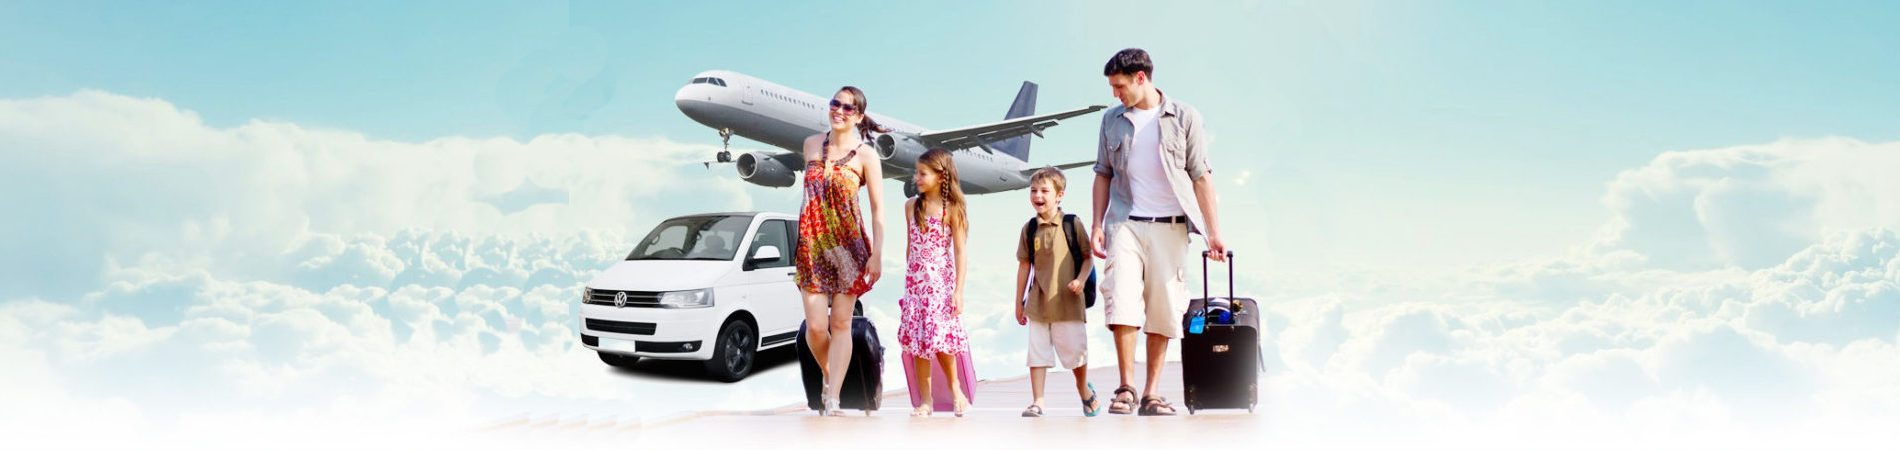 airport to Hotel transfer shuttle Majorca, Alicante, Antalya and Bangkok